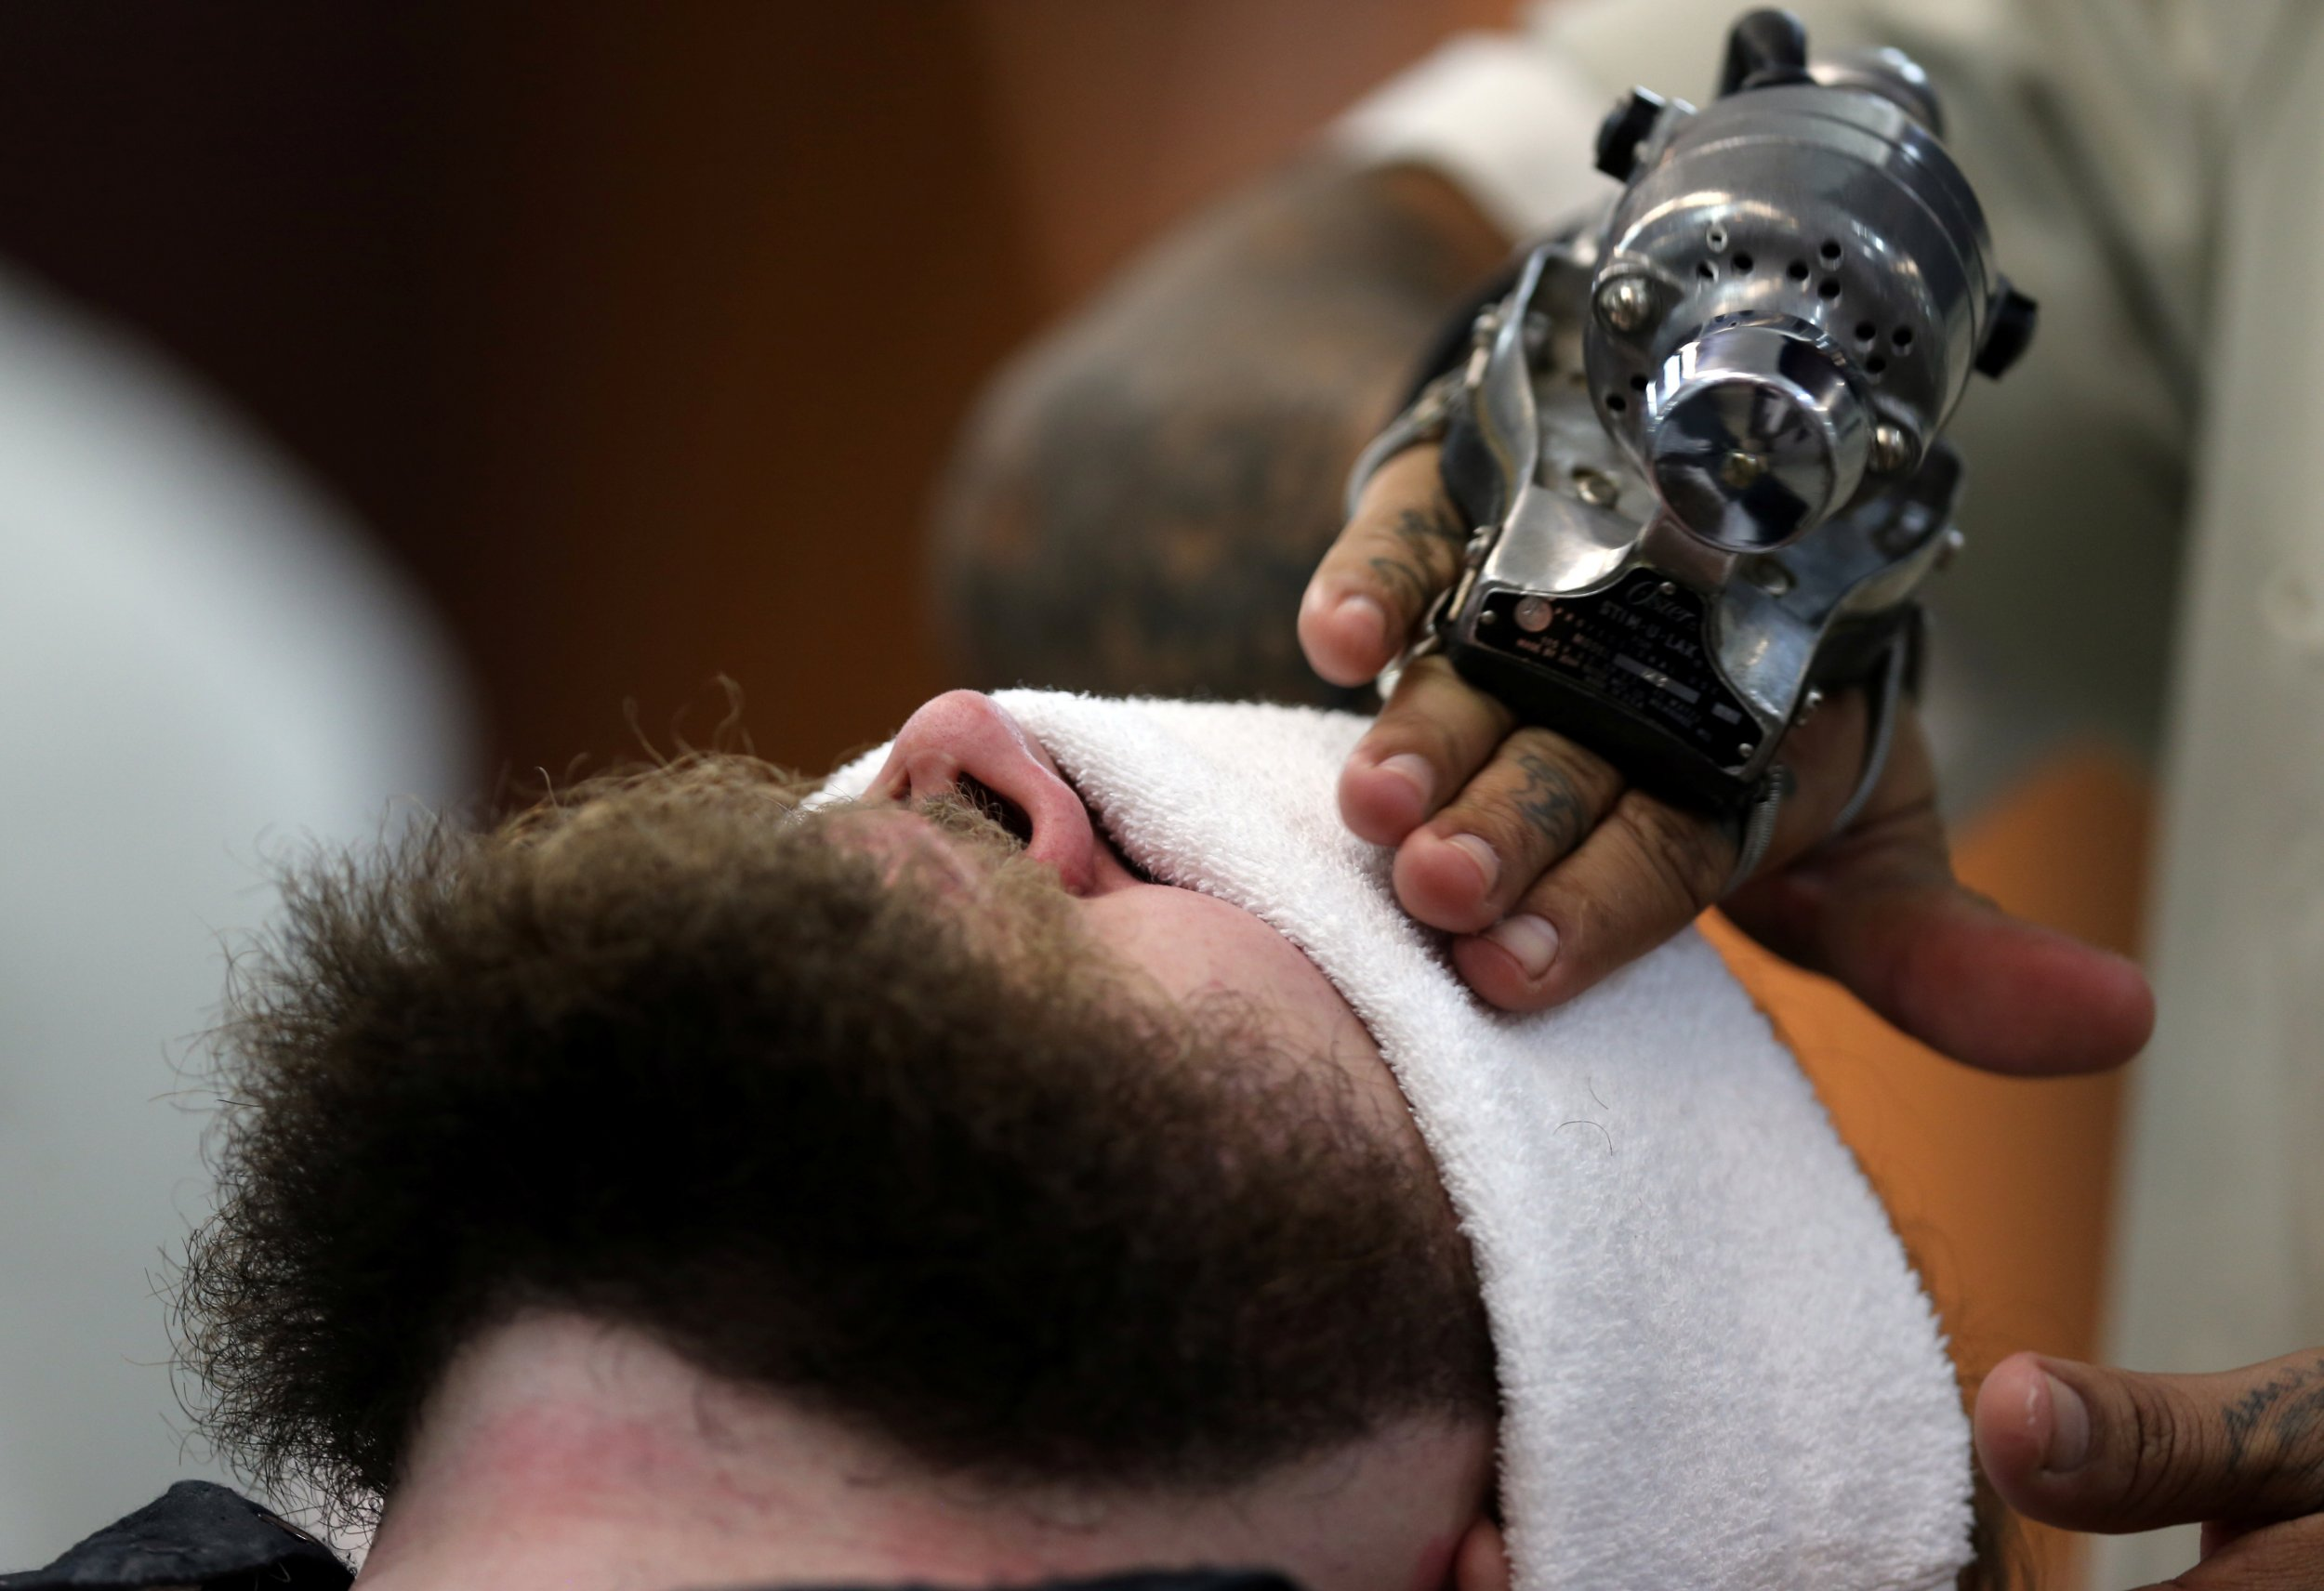 Beards 'protect' men from homosexuality, says Russian religious leader